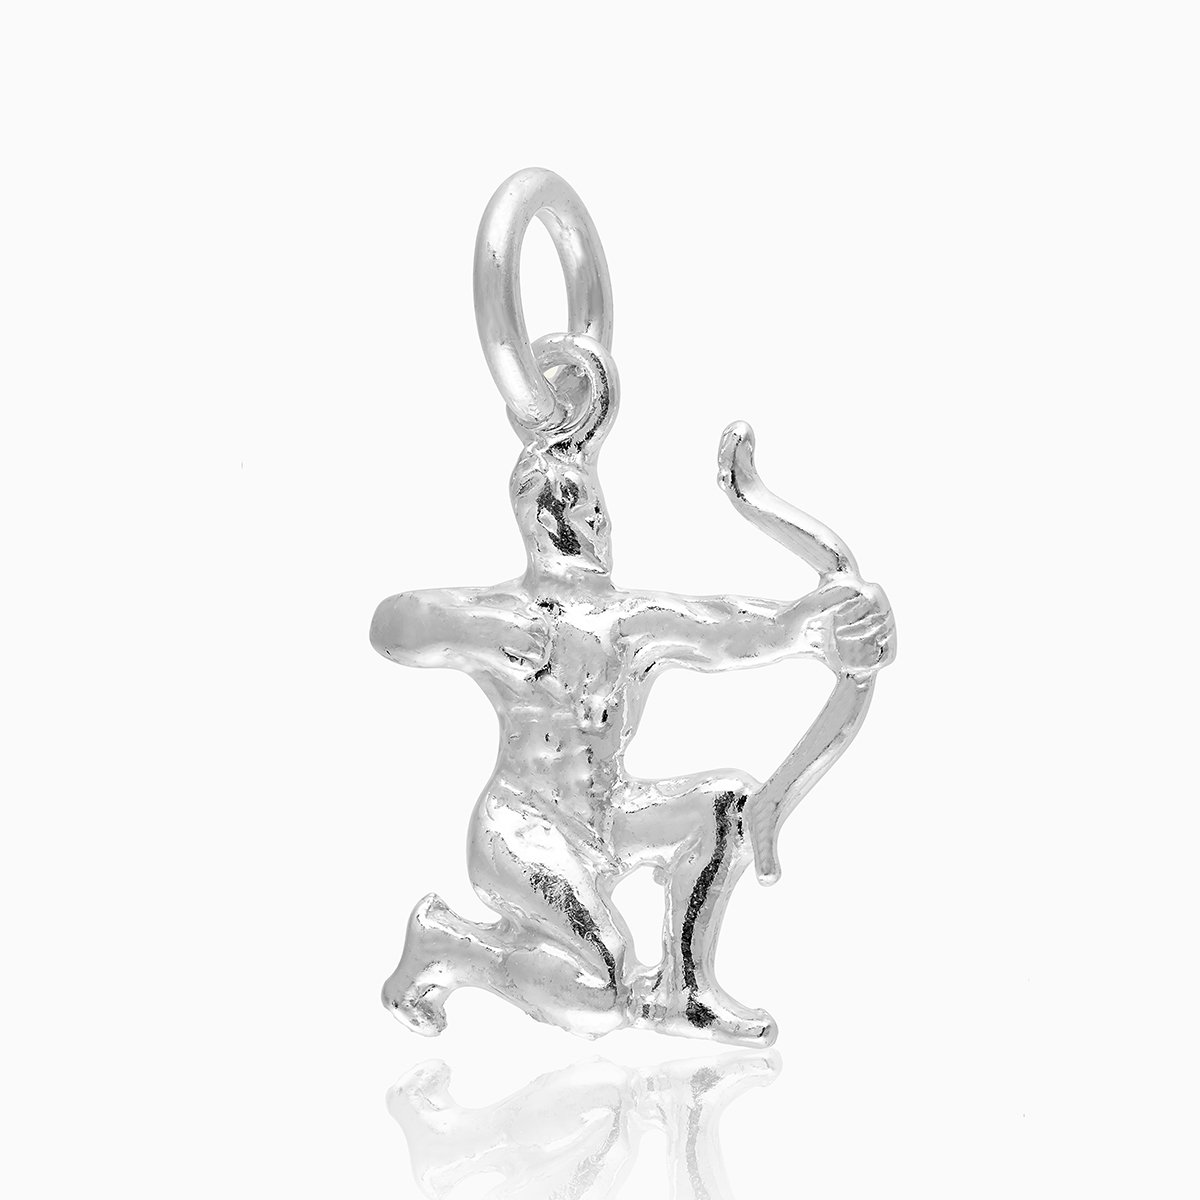 Product title: Sagittarius Silver Charm, product type: Charm